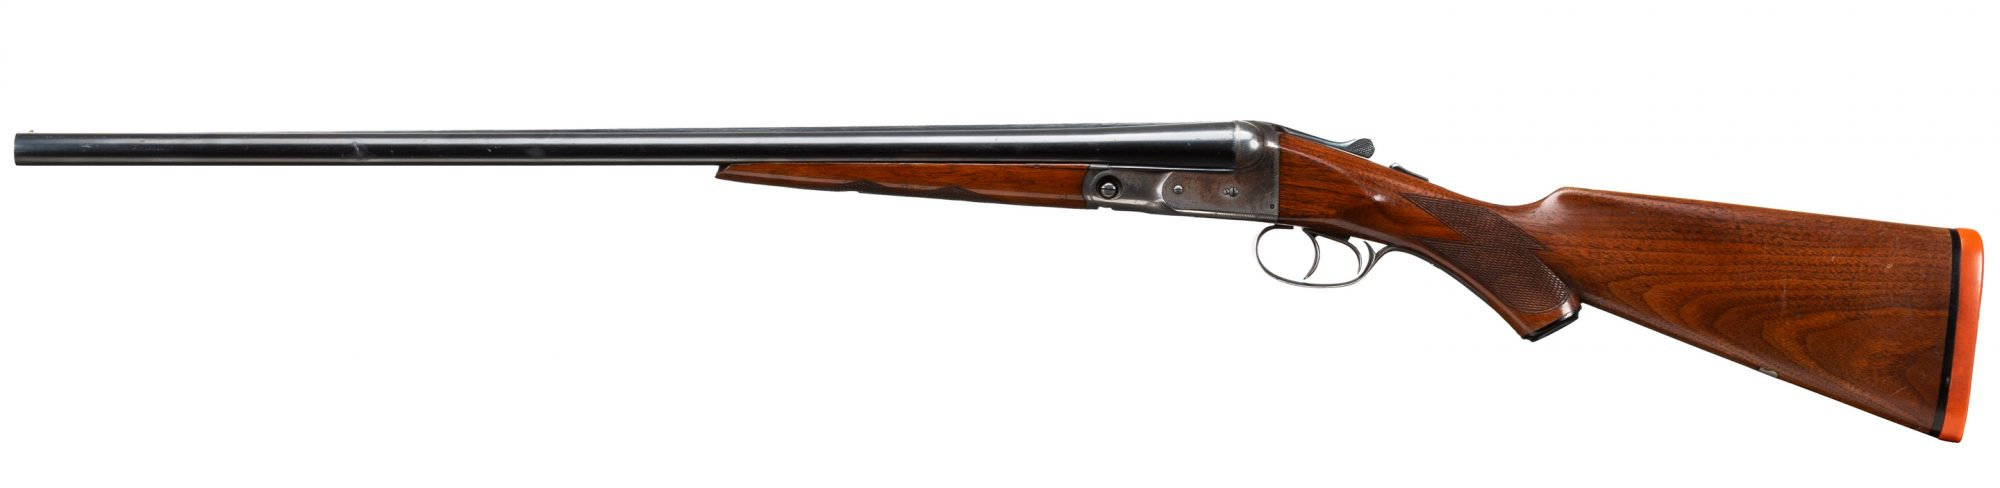 Photo of a pre-owned Parker VH 16 gauge side-by-side shotgun, available for sale as-is through Turnbull Restoration of Bloomfield, New York